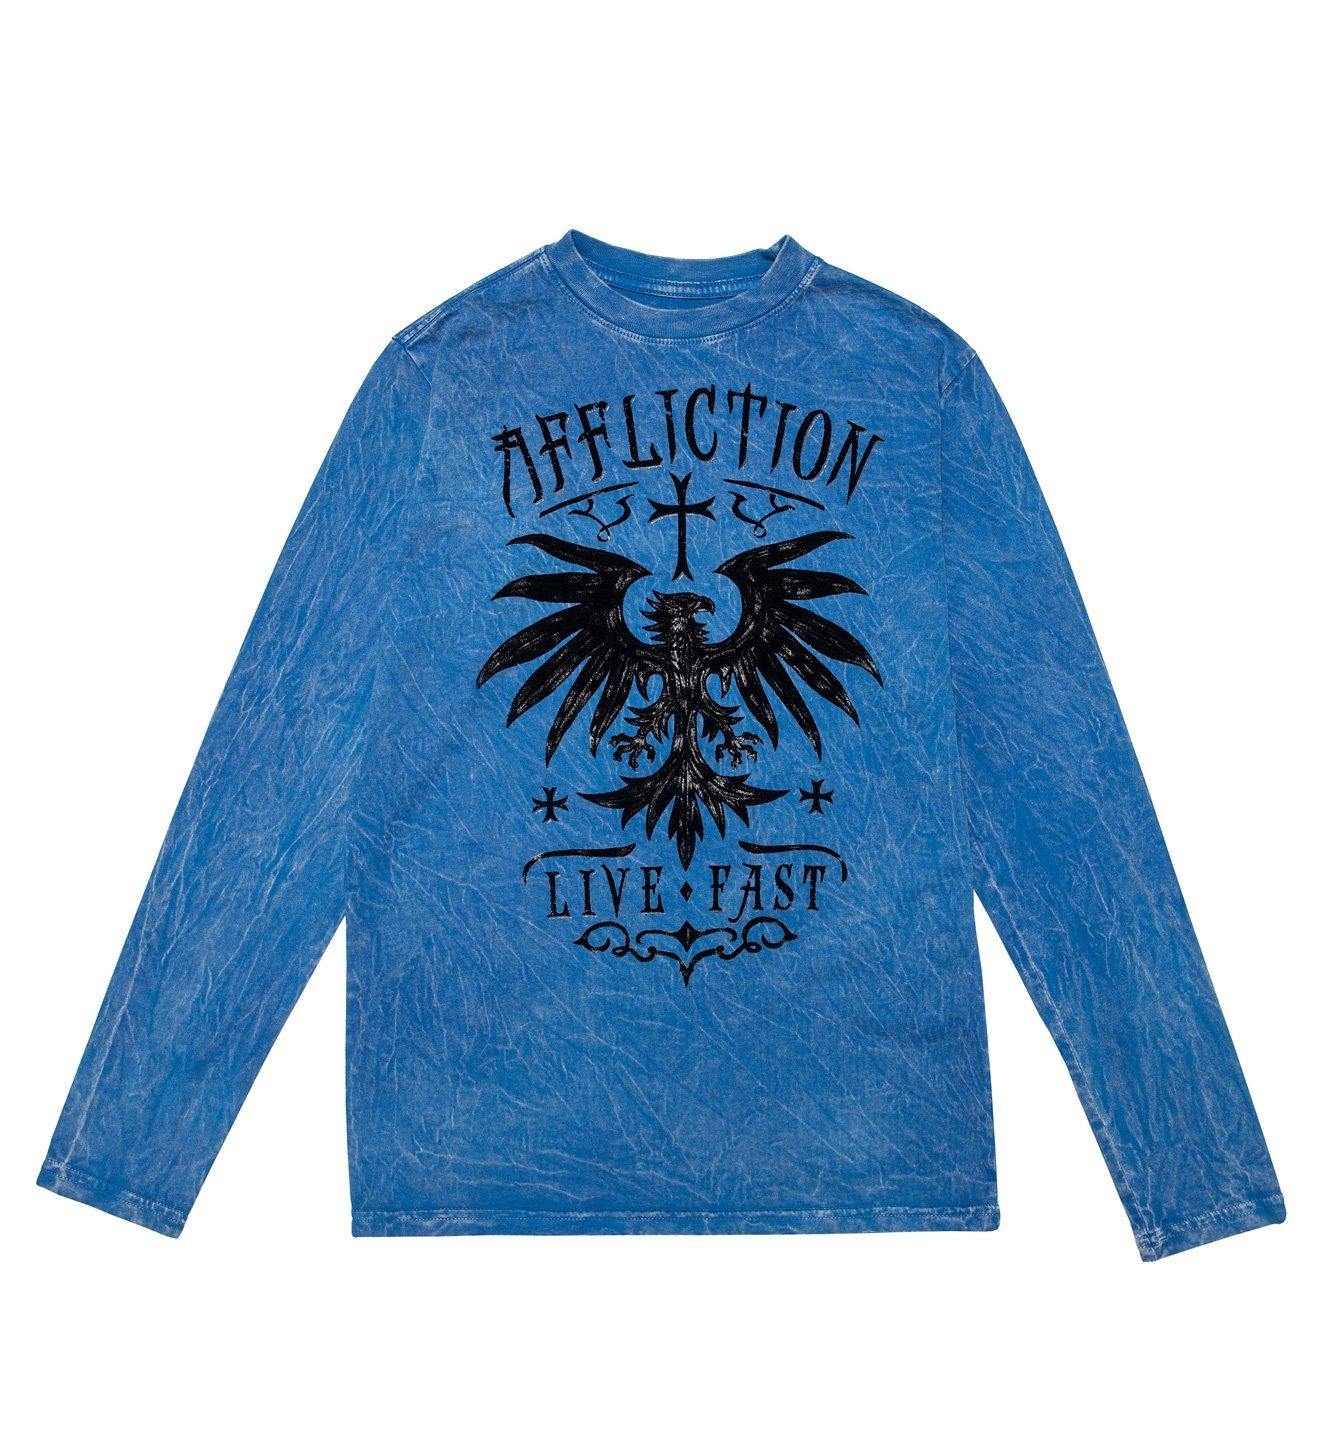 Rebel Rouser - Youth - Kids Long Sleeve Tees - Affliction Clothing